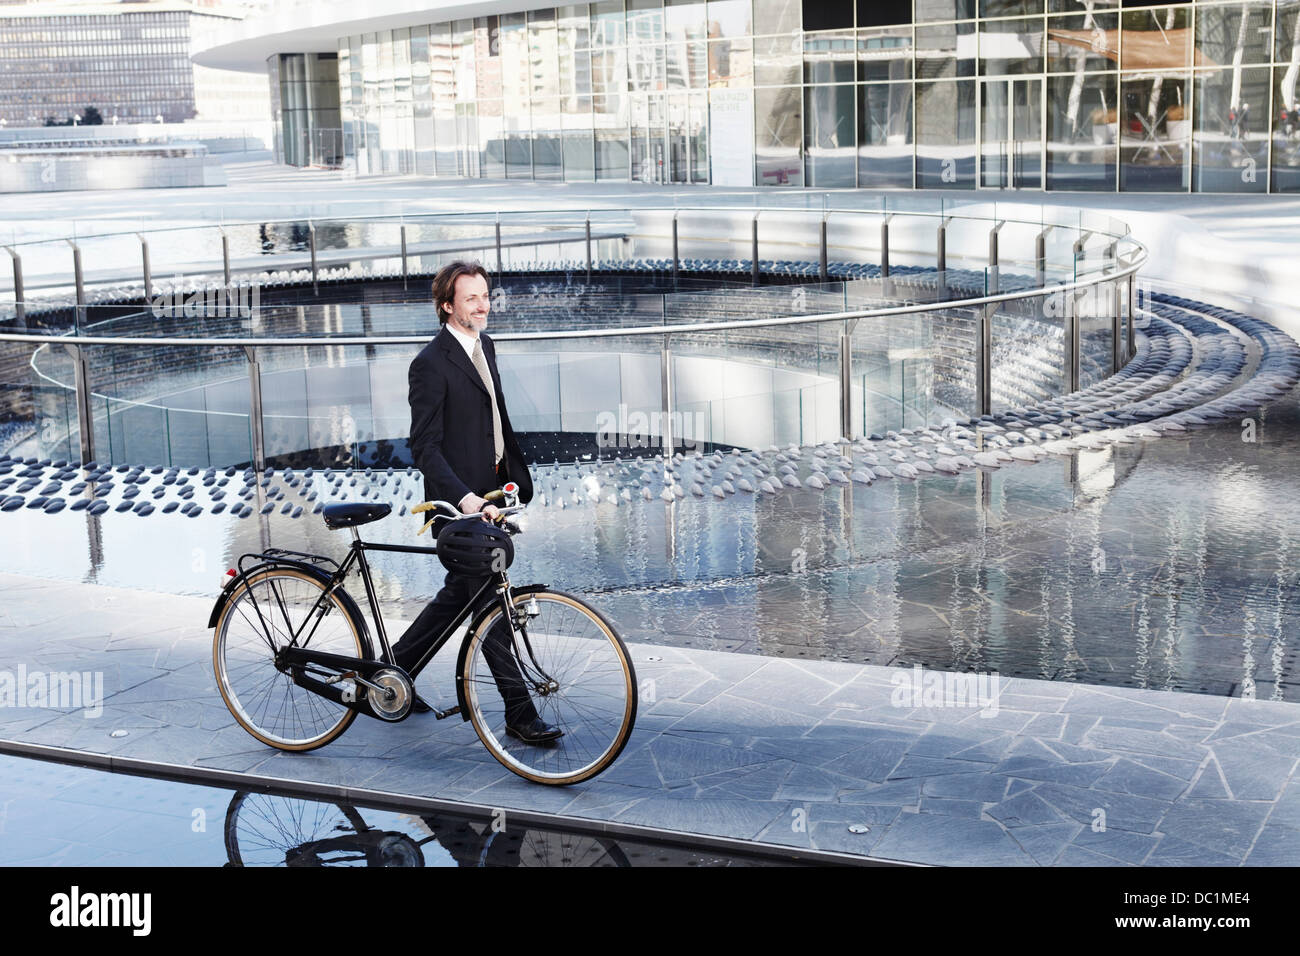 Mid adult businessman walking with bicycle by water feature in city - Stock Image